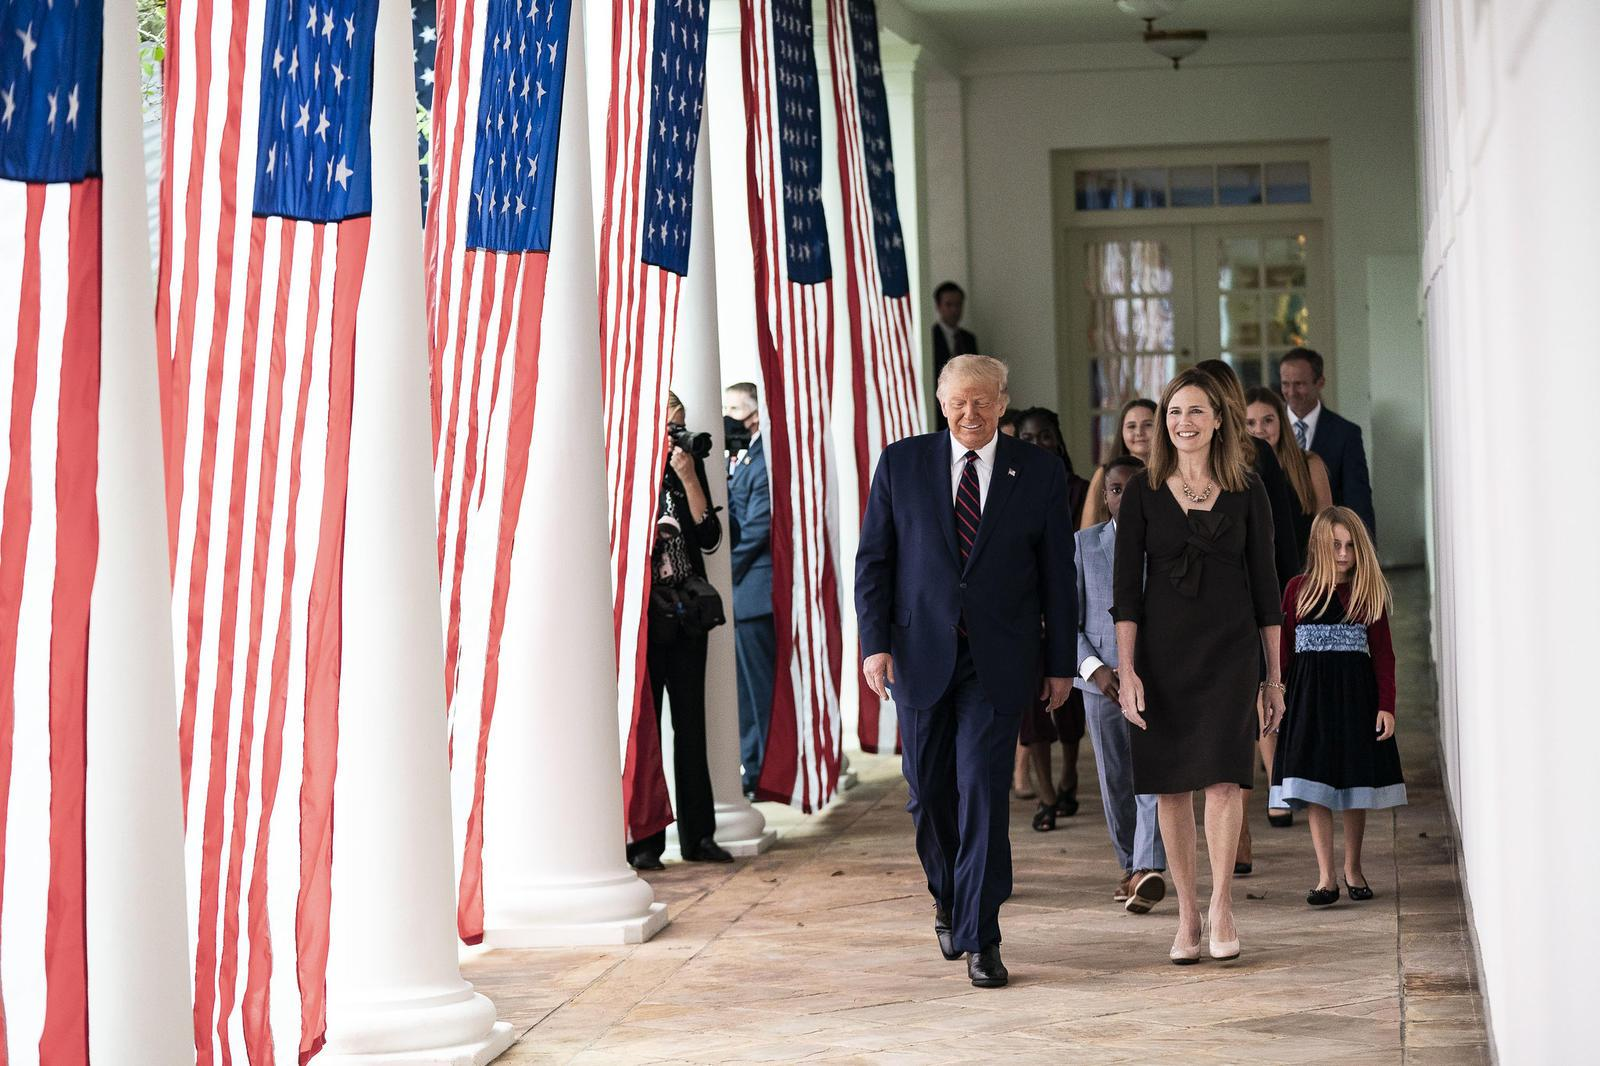 Donald Trump walks with Amy Coney Barrett